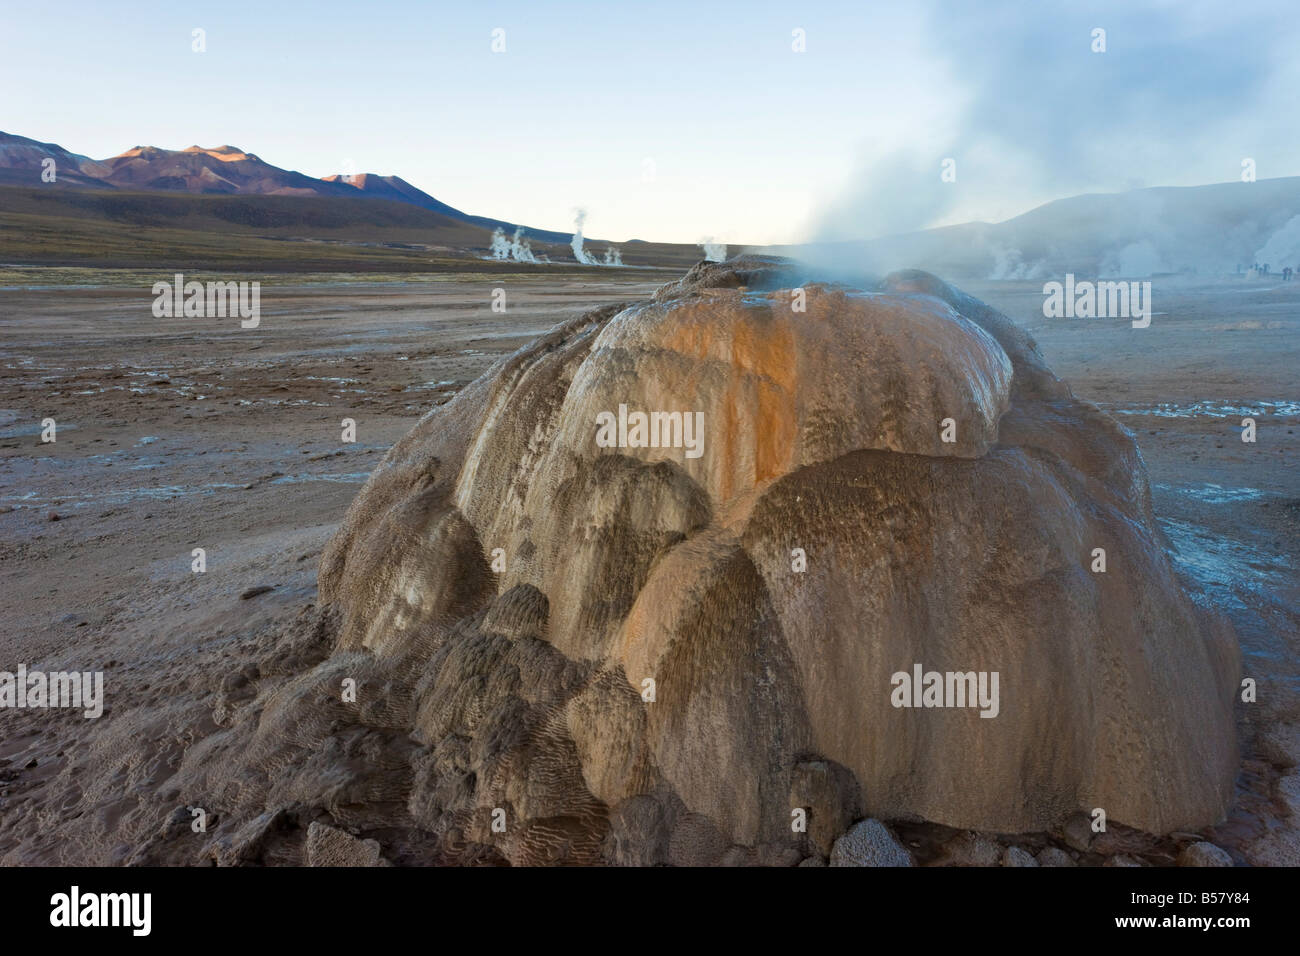 El Tatio Geysers, the area is ringed by volcanoes and fed by 64 geysers, Atacama Desert, Chile - Stock Image